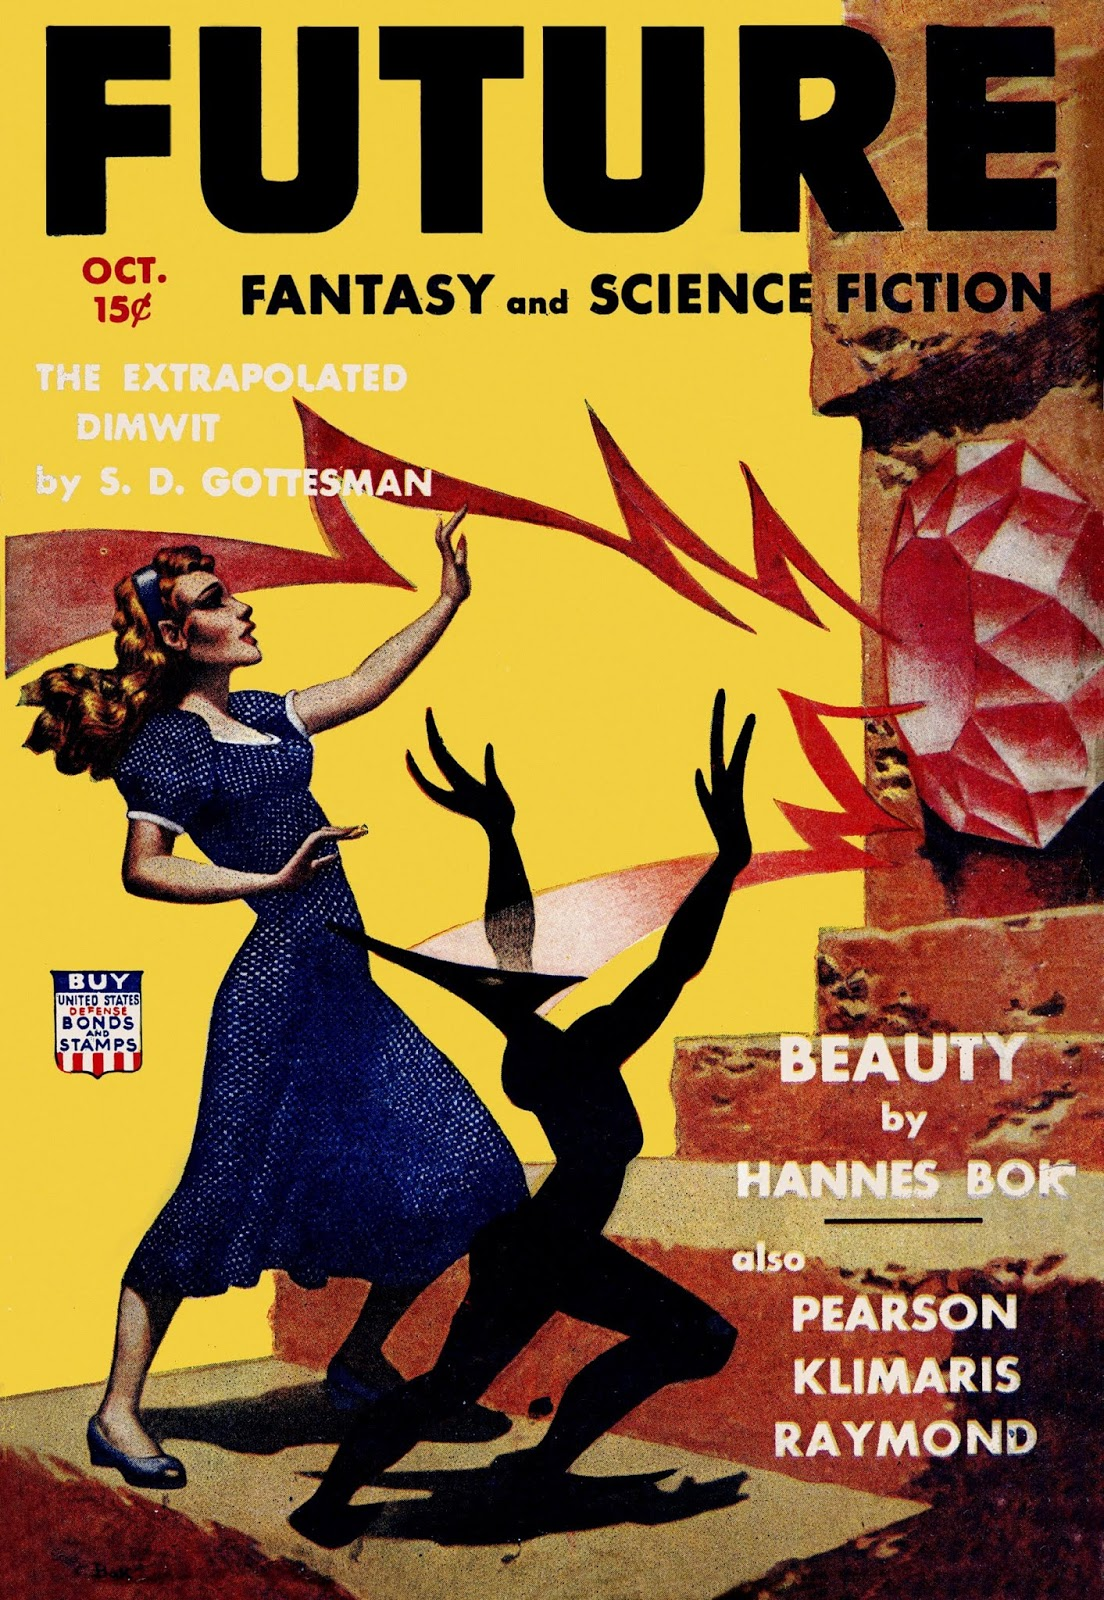 fiction science magazine covers bloody rod